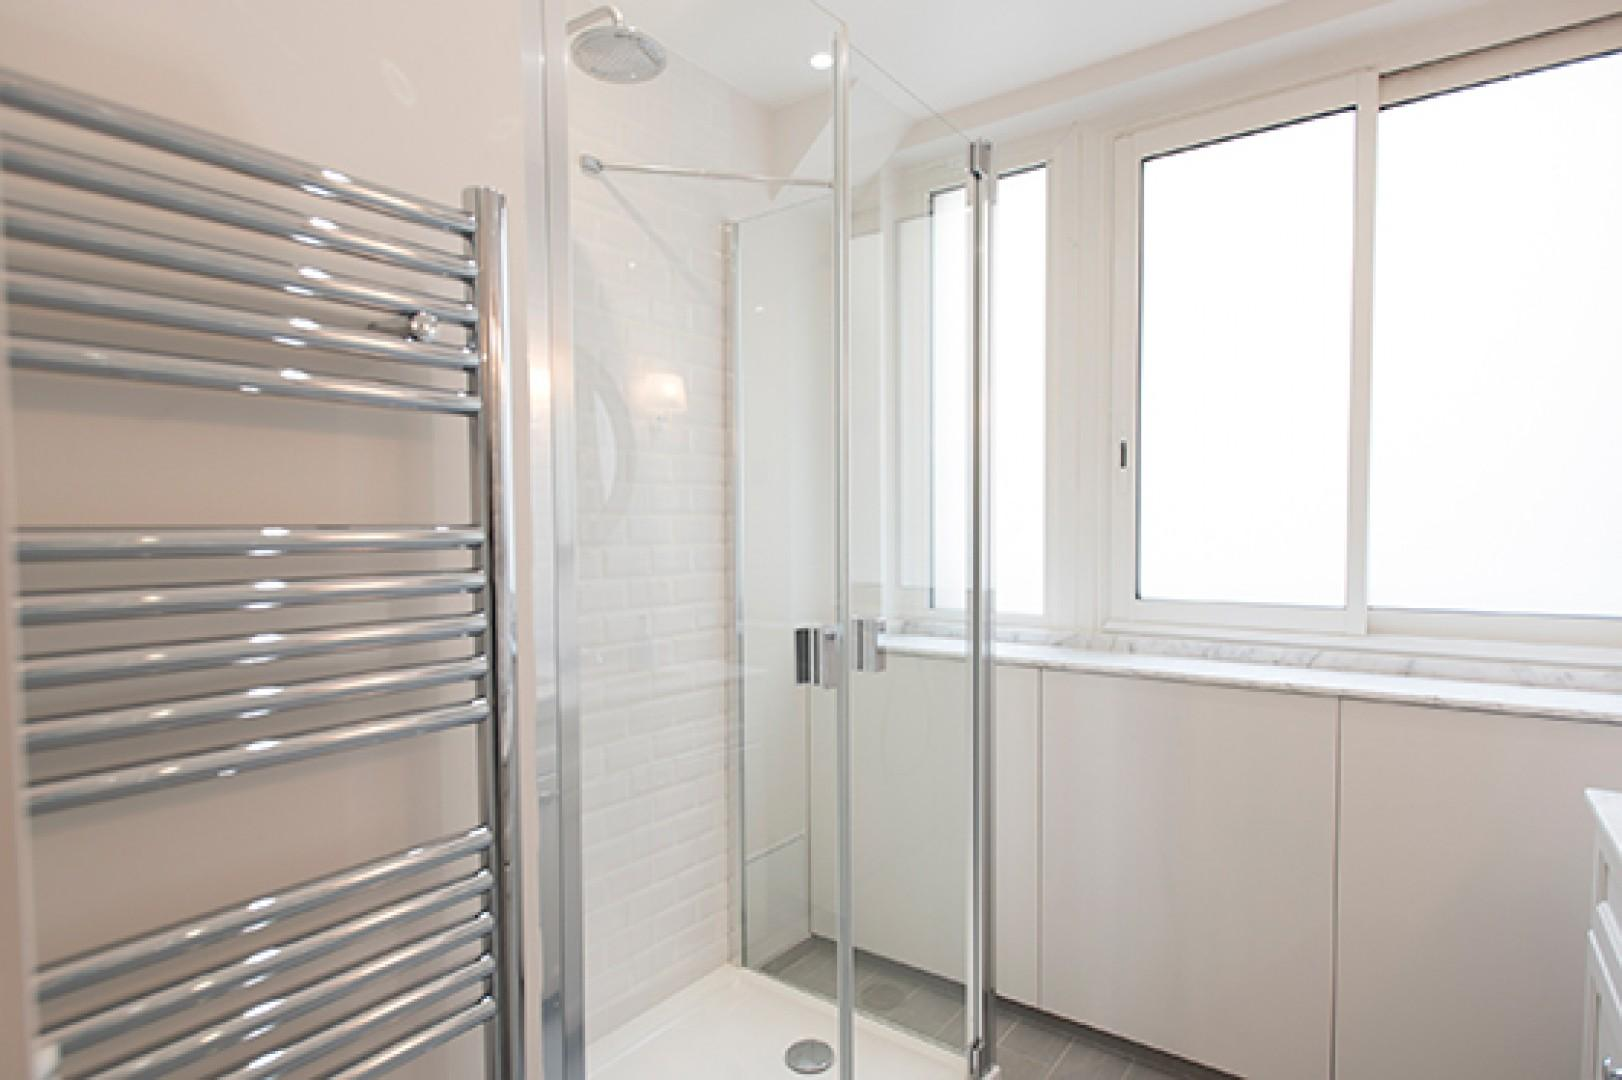 Start your day with an energizing rainfall shower.